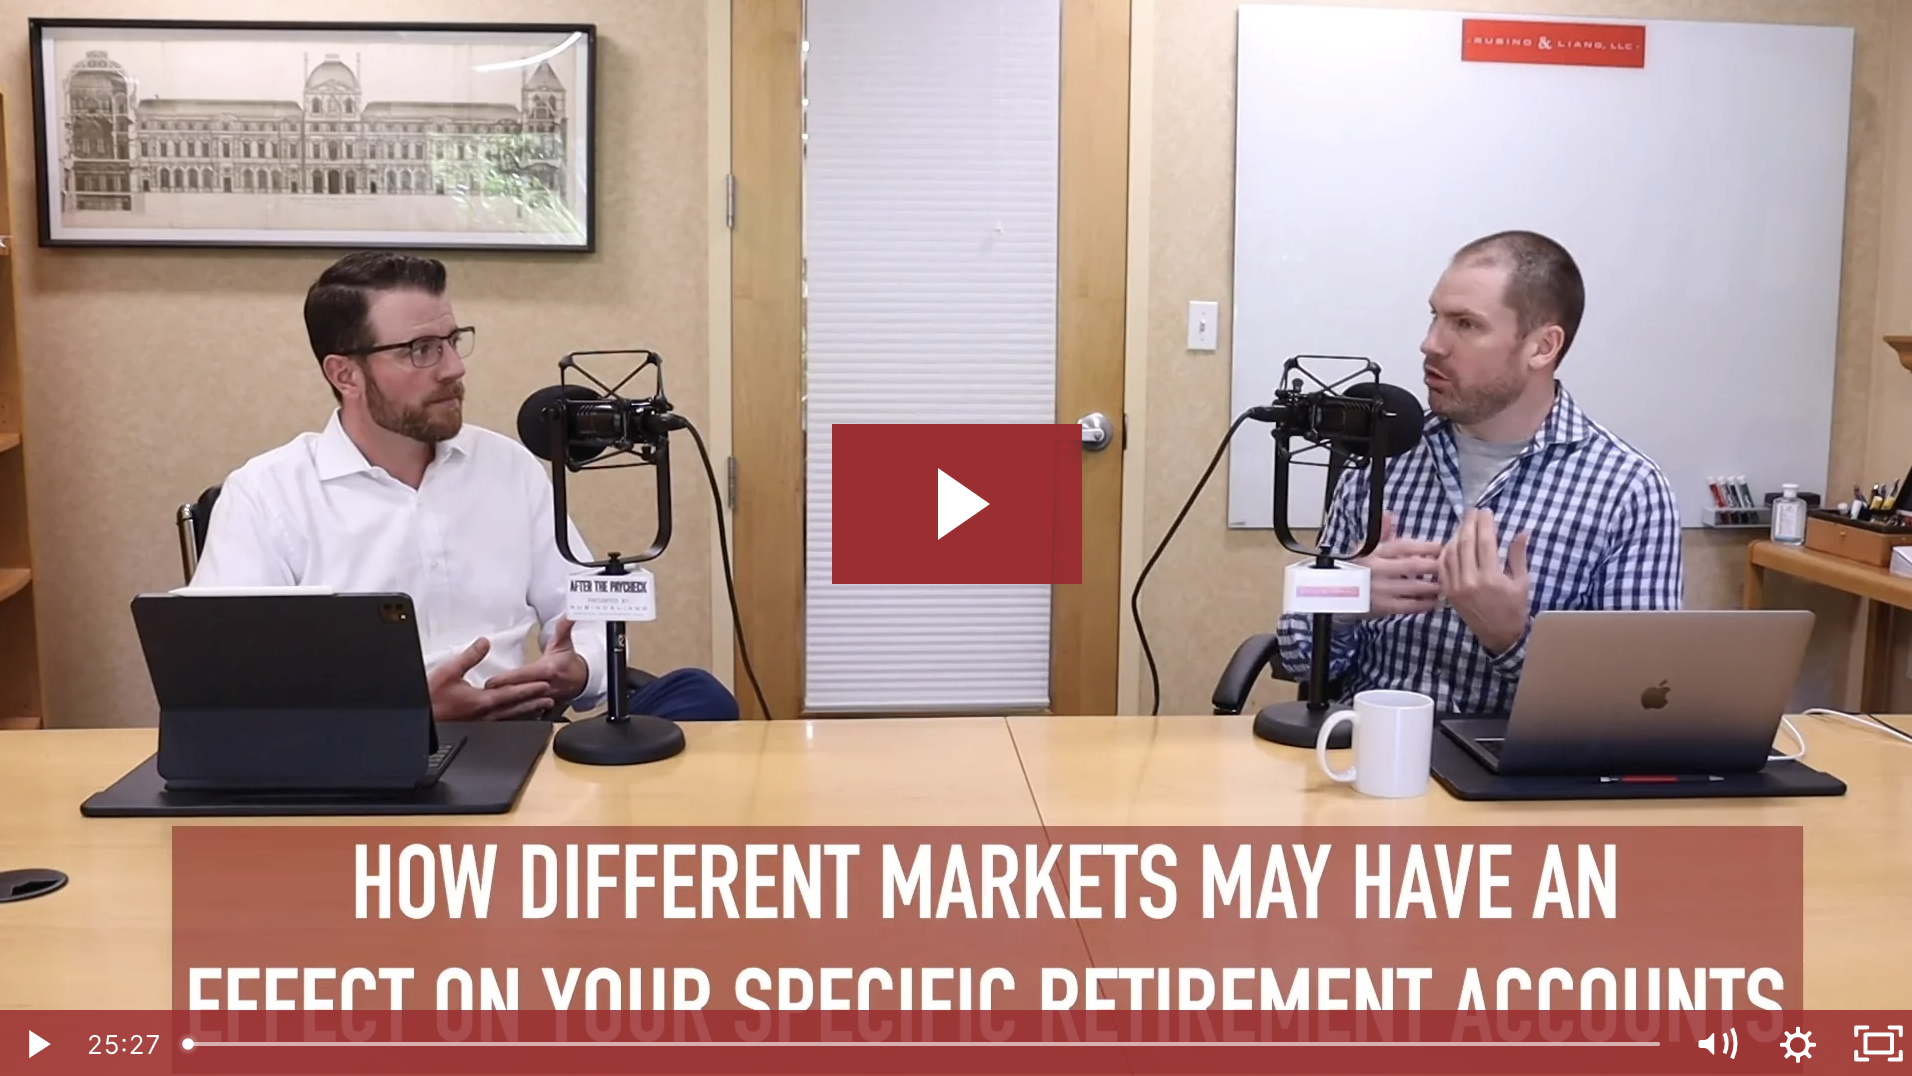 Types Of Markets And Their Effect On Your Retirement Accounts